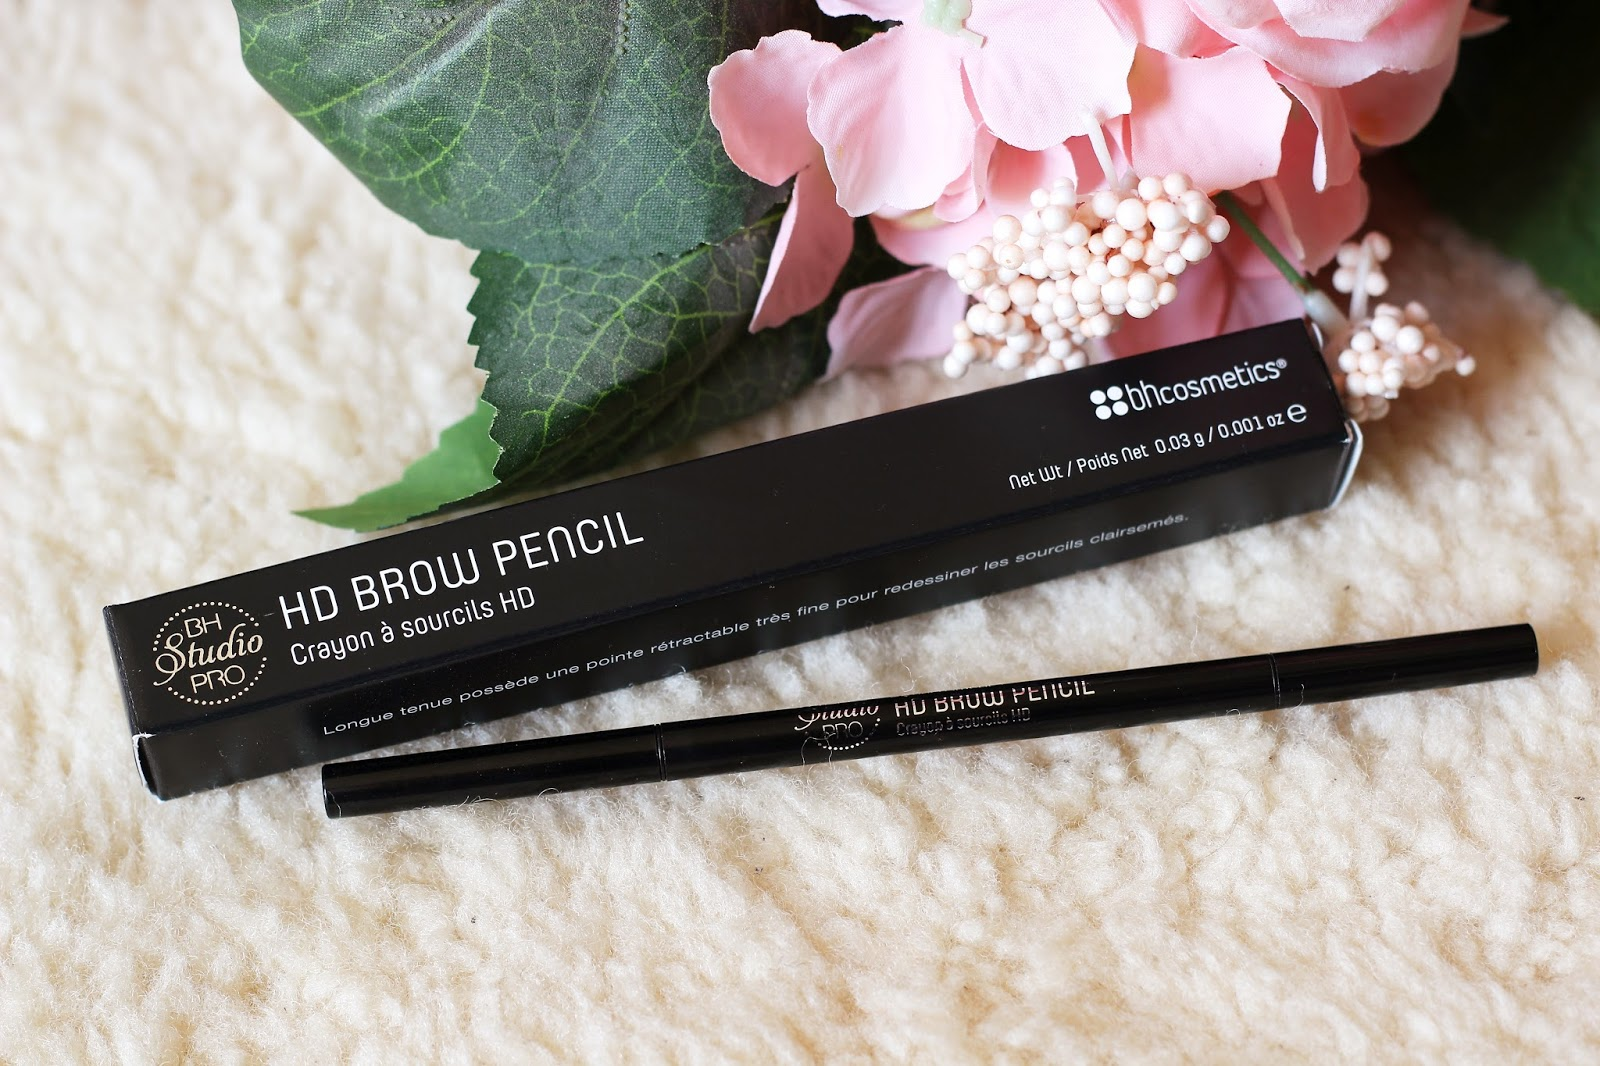 BH Cosmetics Studio Pro HD Brow Pencil | Review & Swatch | Ivory ...